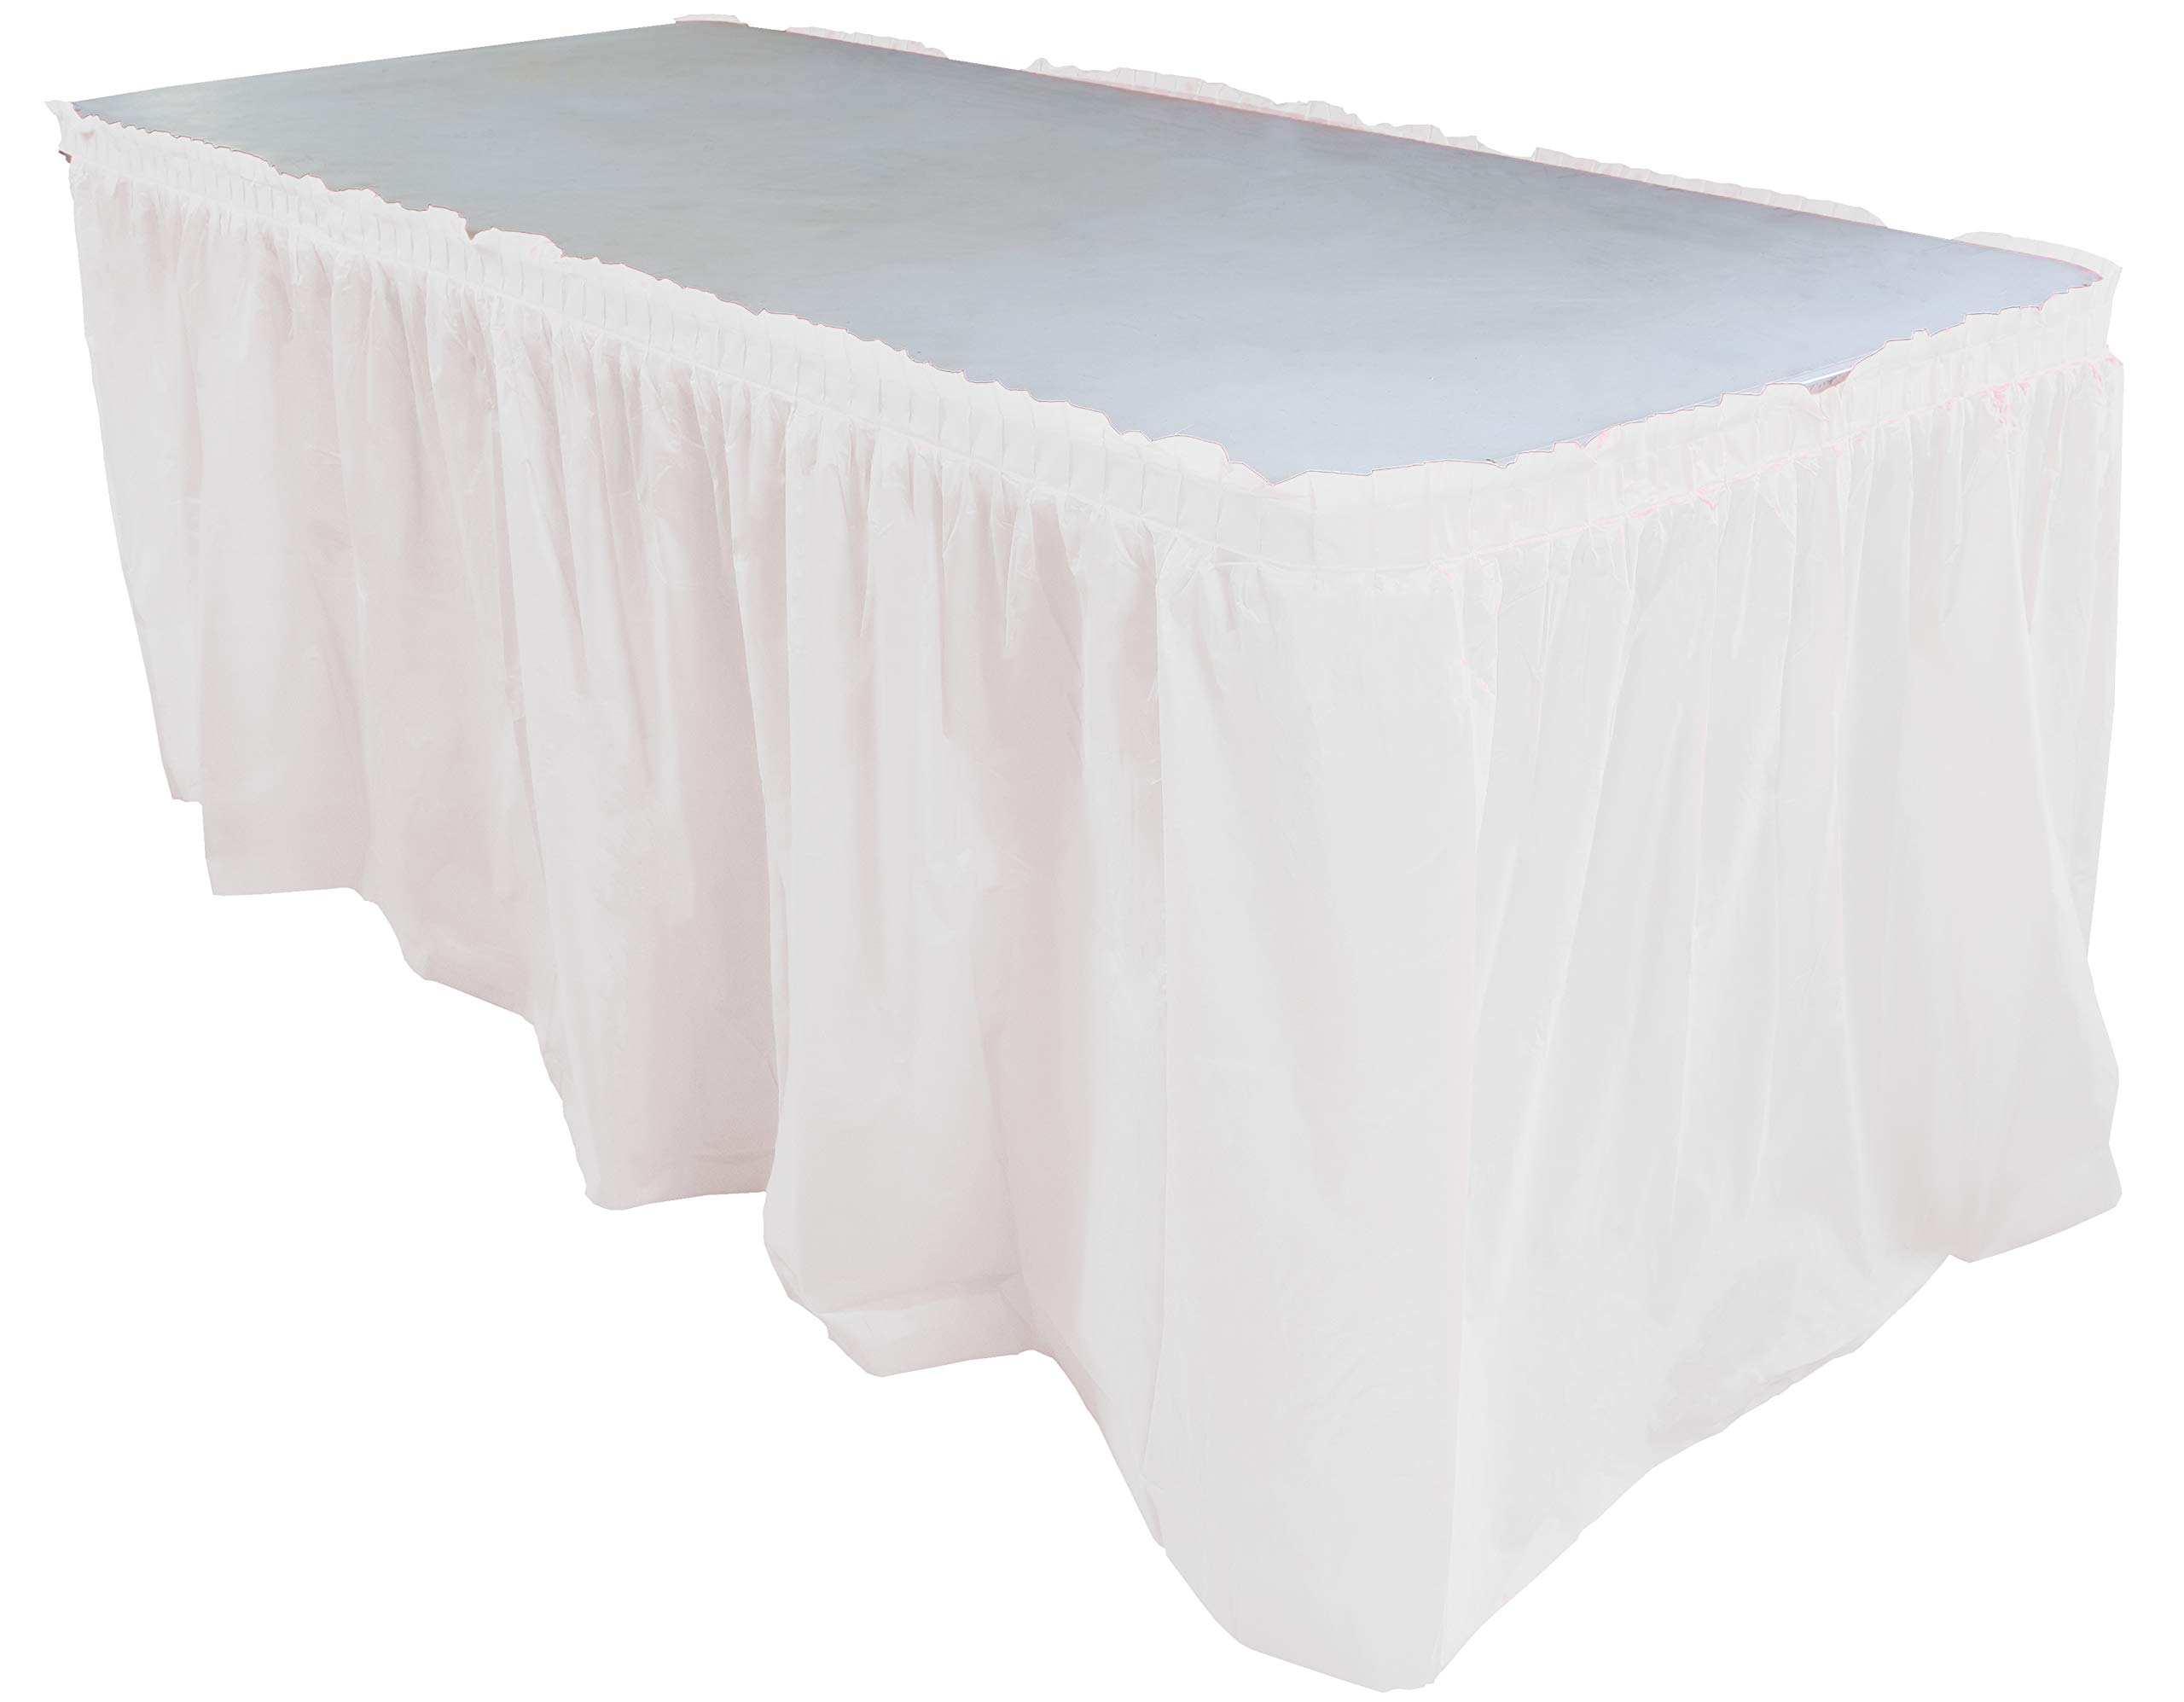 Exquisite Solid Color 14 Ft. Plastic Tablecloth Skirt, Disposable Plastic Tableskirts - White - 6 Count by Exquisite